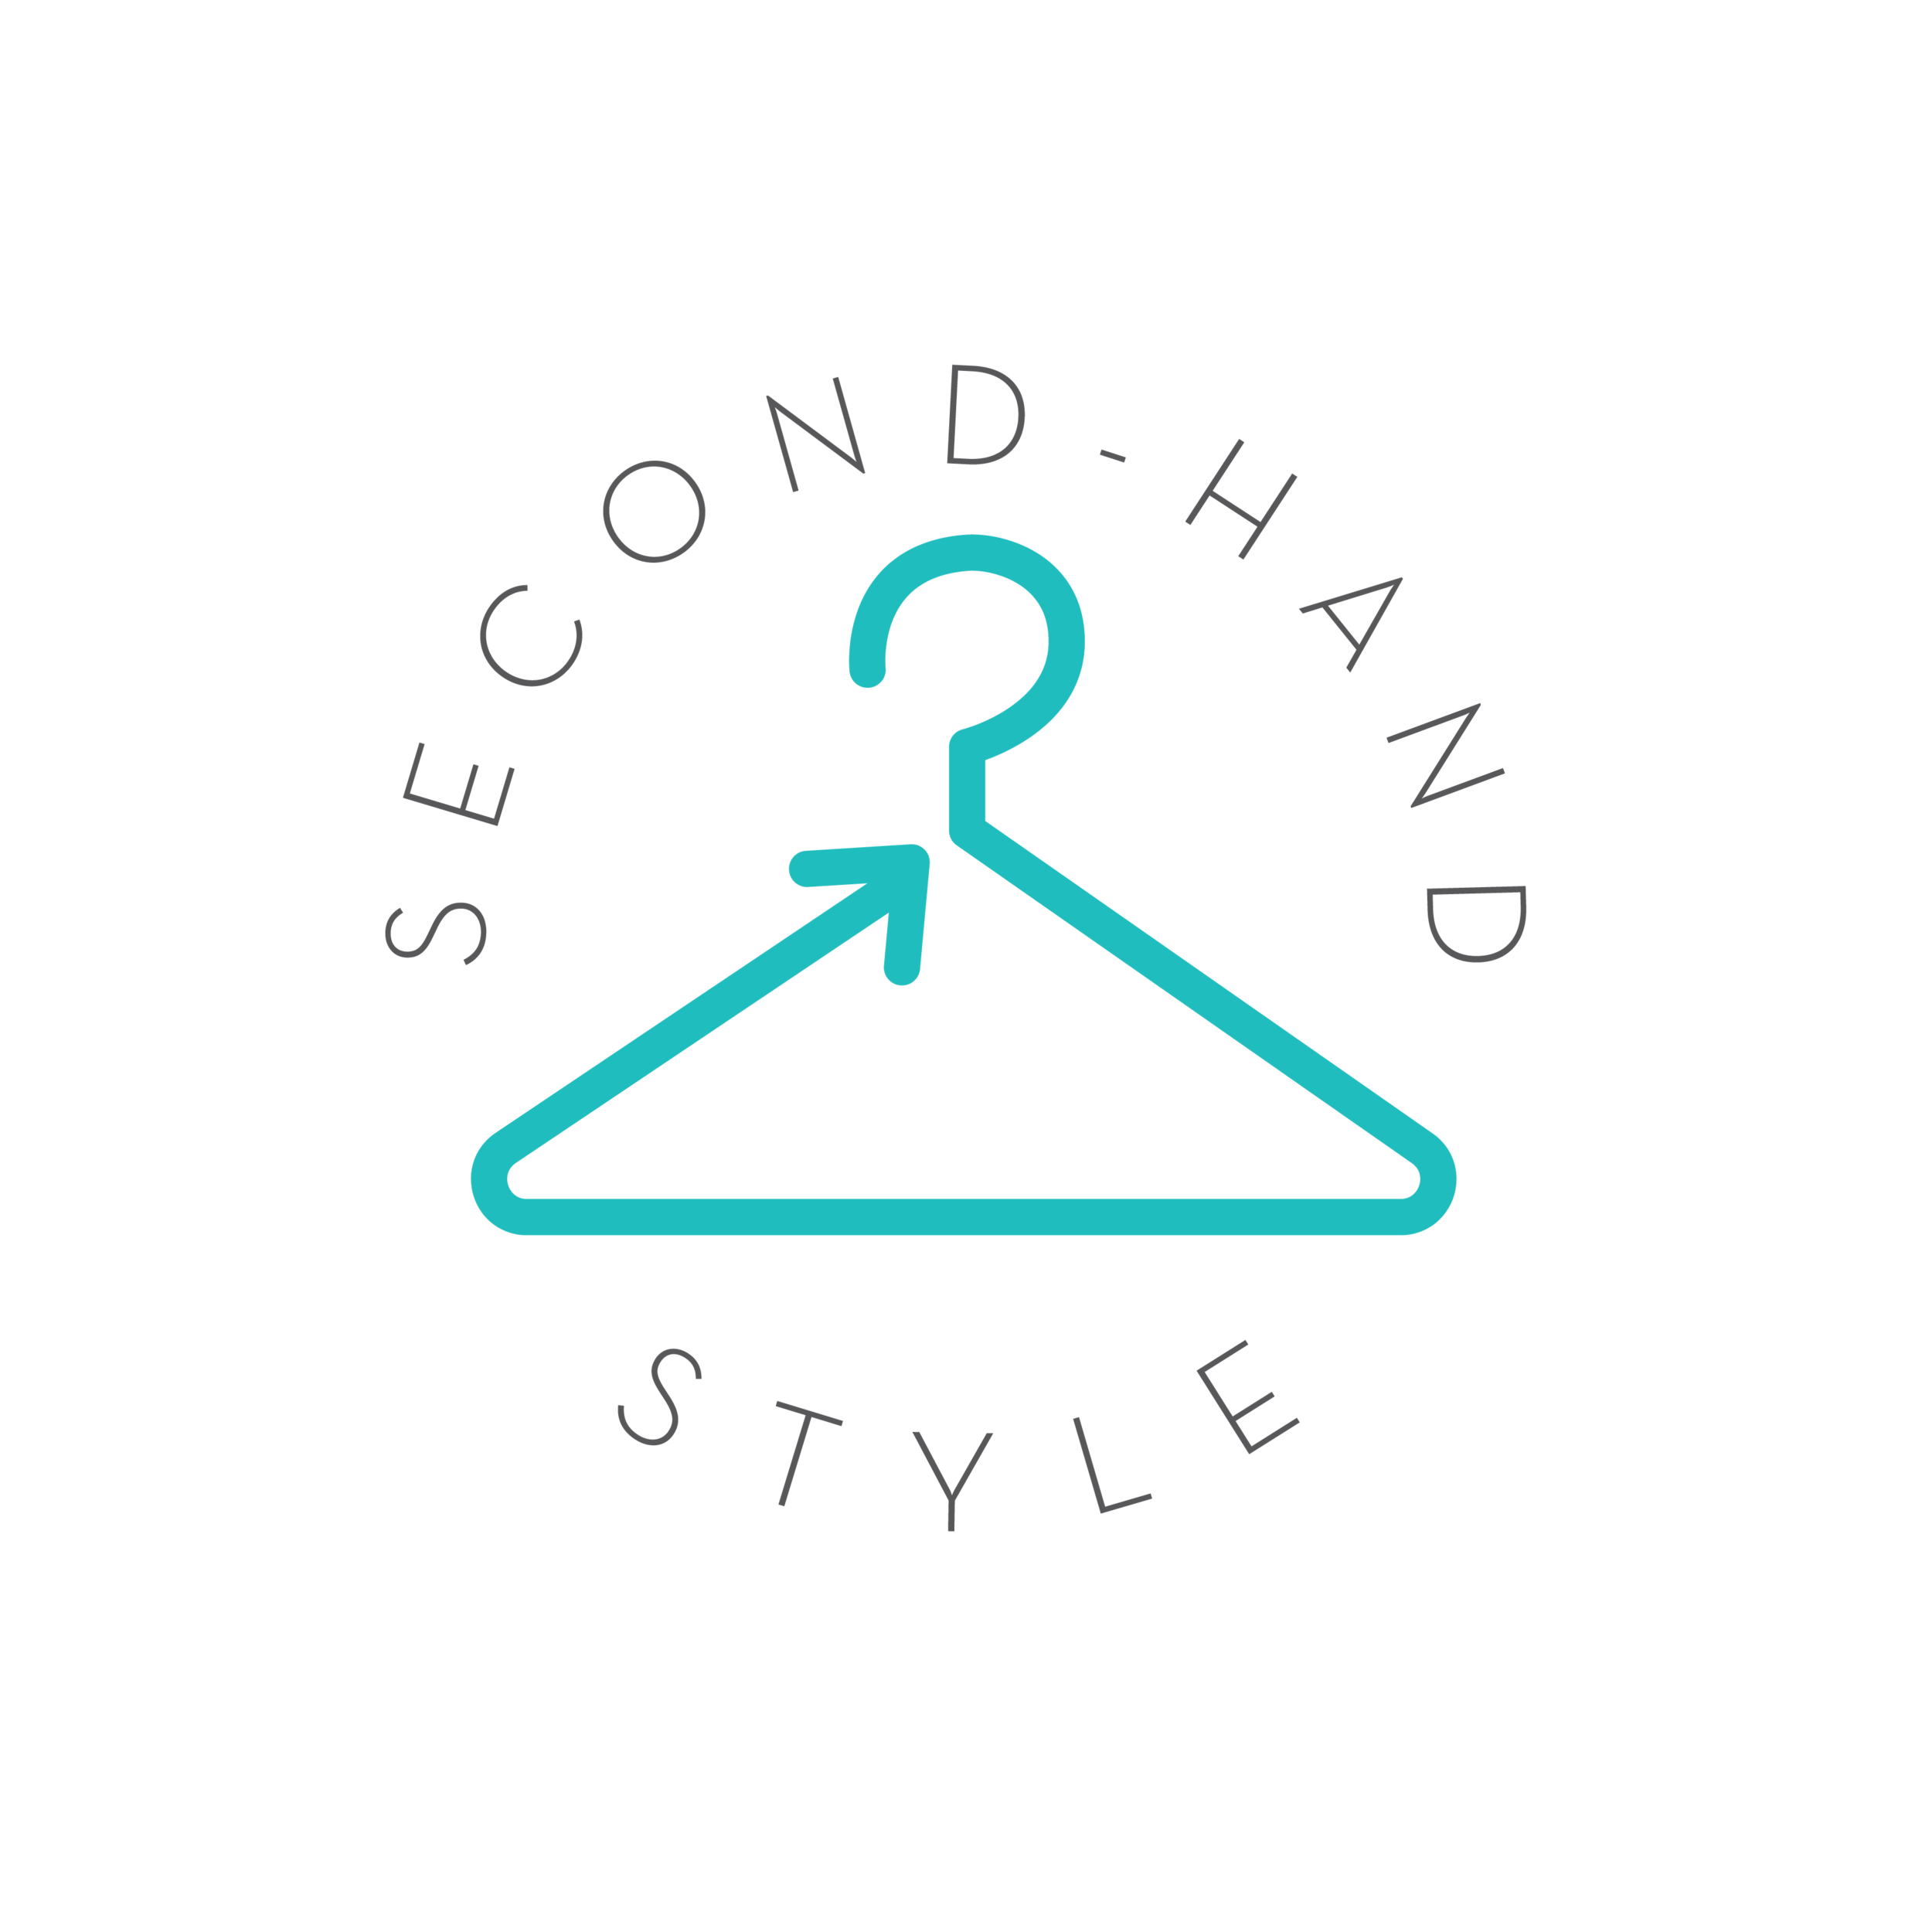 second-hand-style-01.png